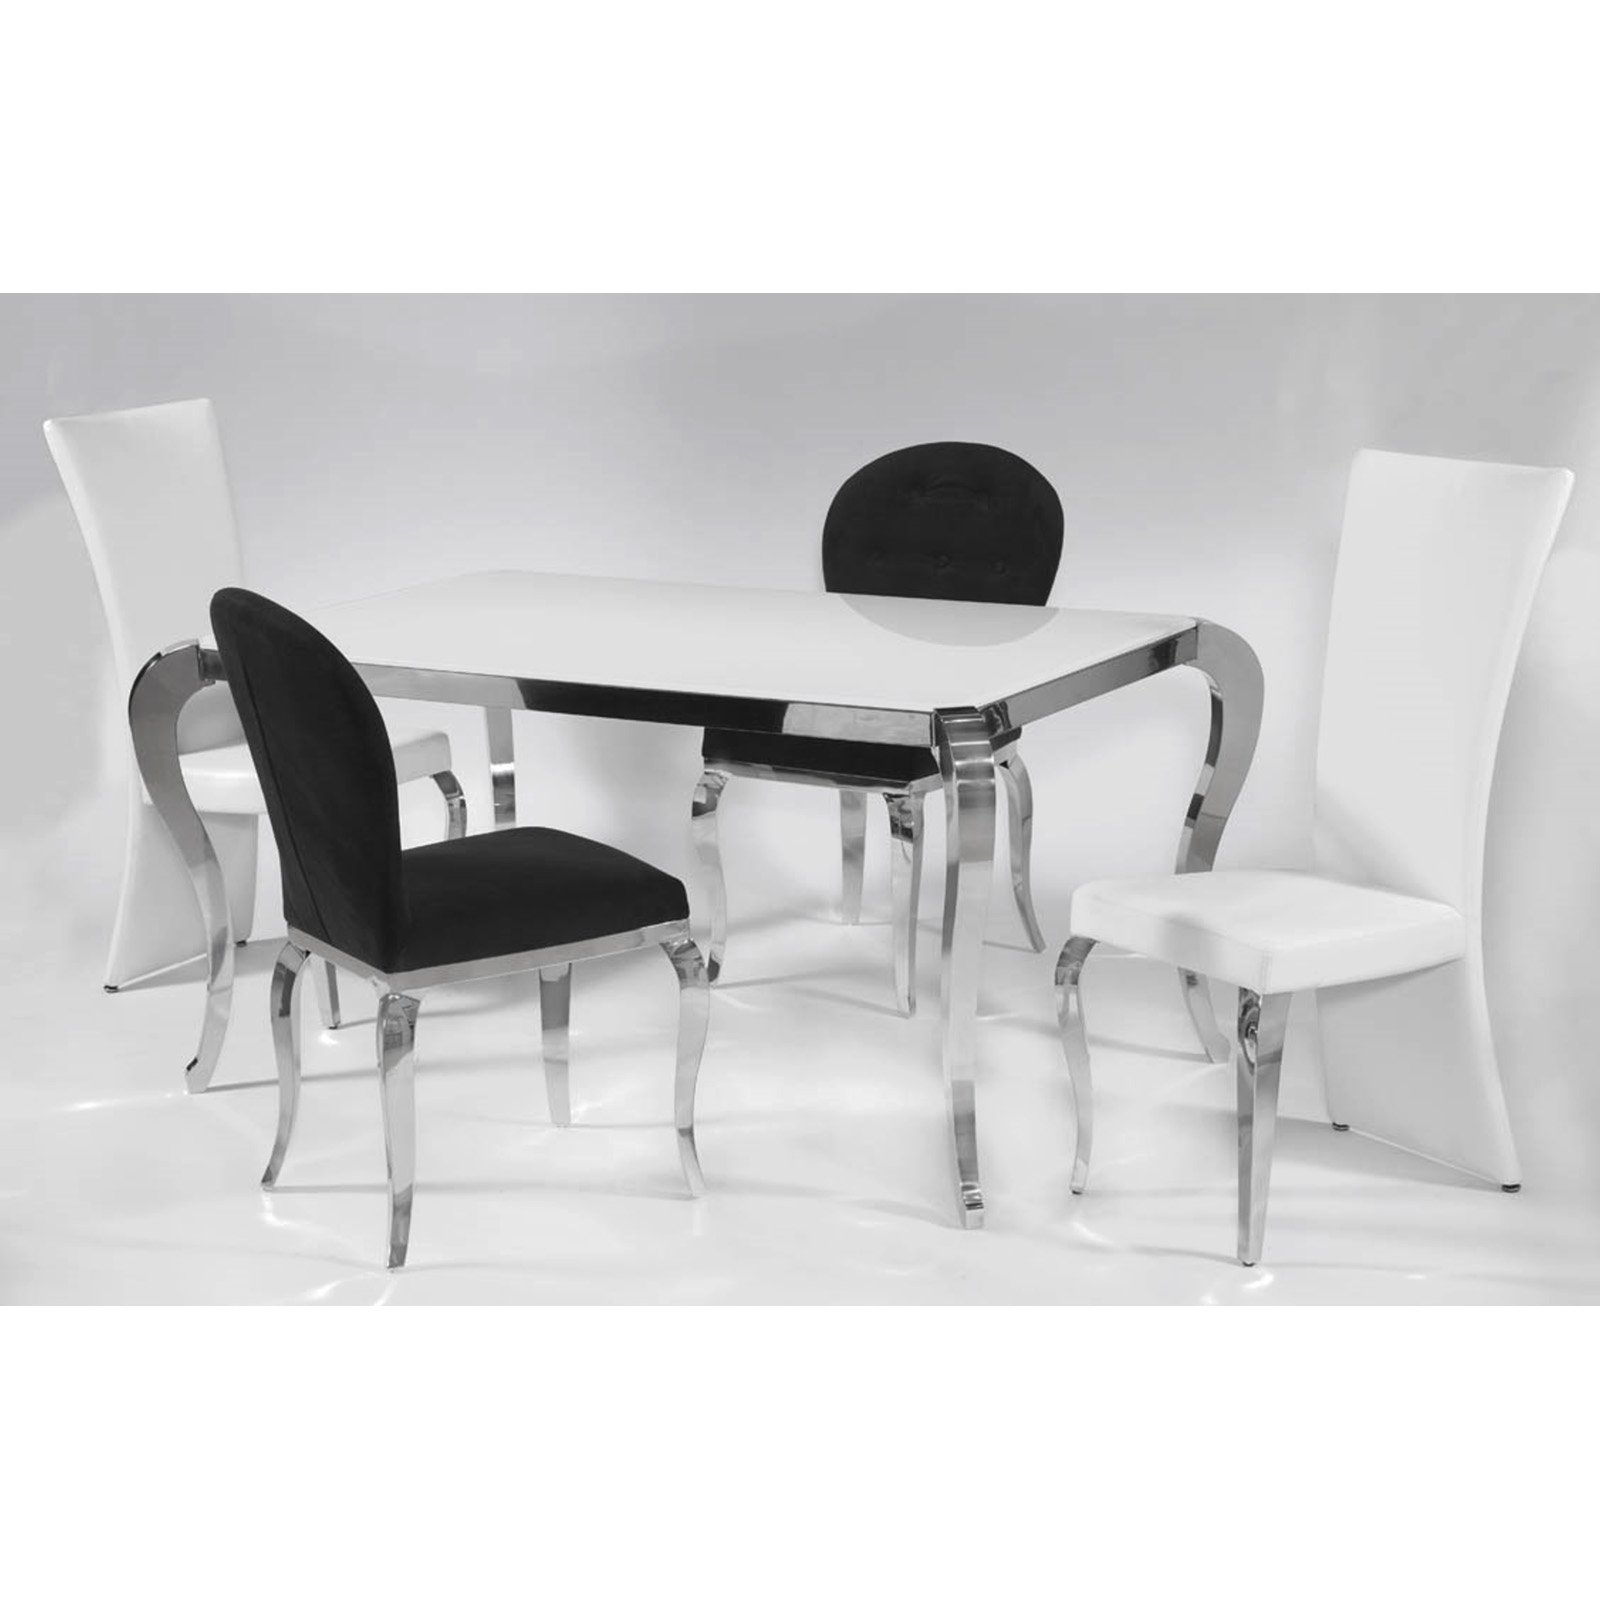 Chrome Dining Room Chairs Regarding Well Known Chintaly Teresa 5 Piece Dining Table Set – Walmart (View 7 of 25)